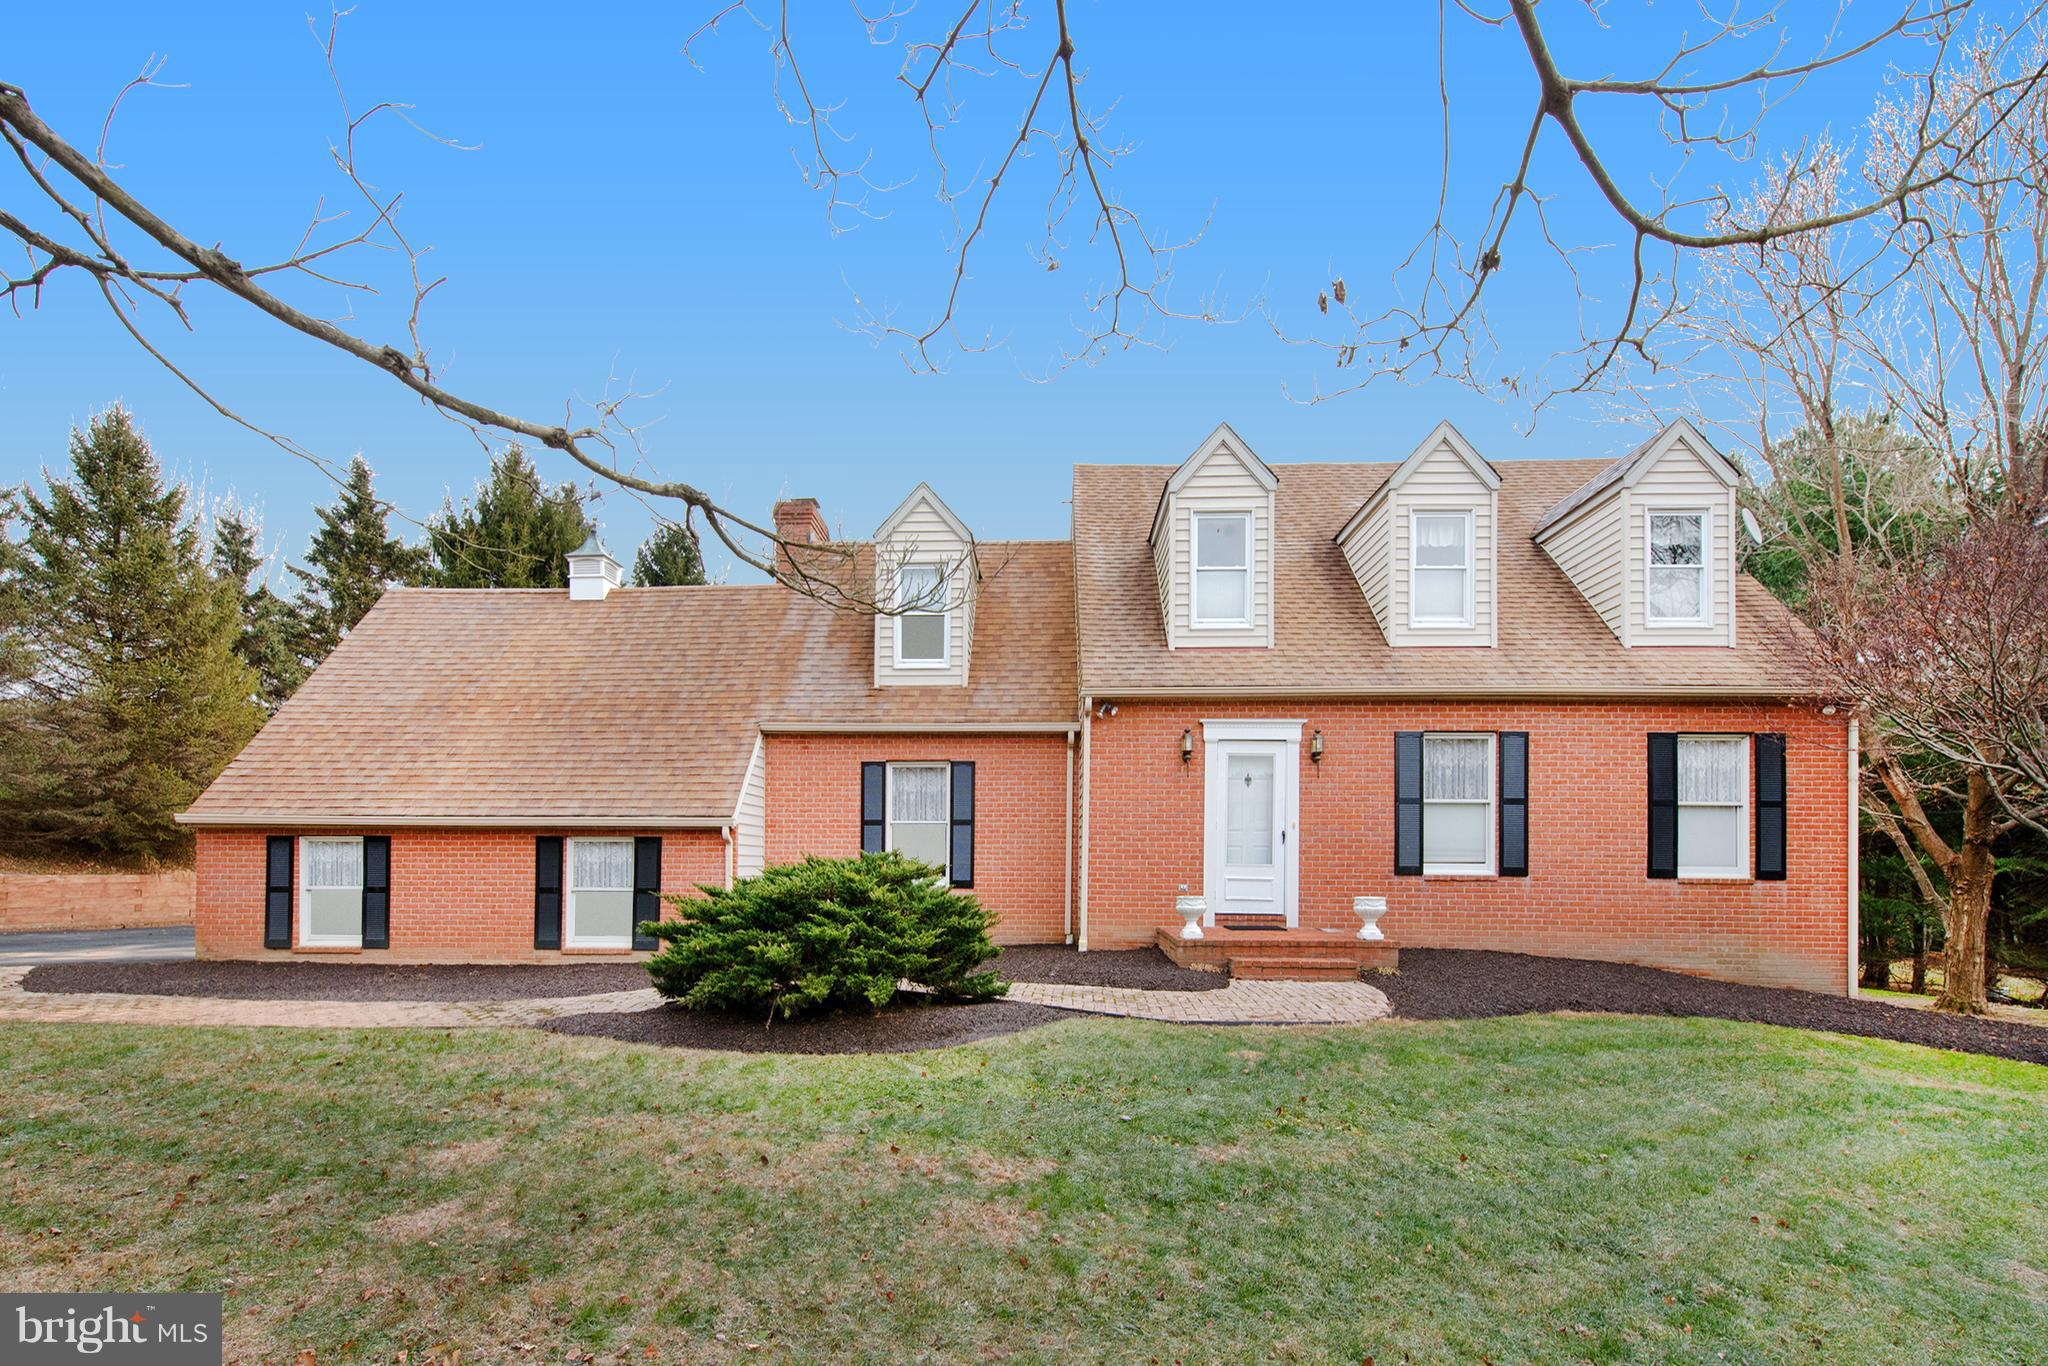 Beautiful brick-front cape cod home nestled into cul-de-sac setting and sitting on just over one acr